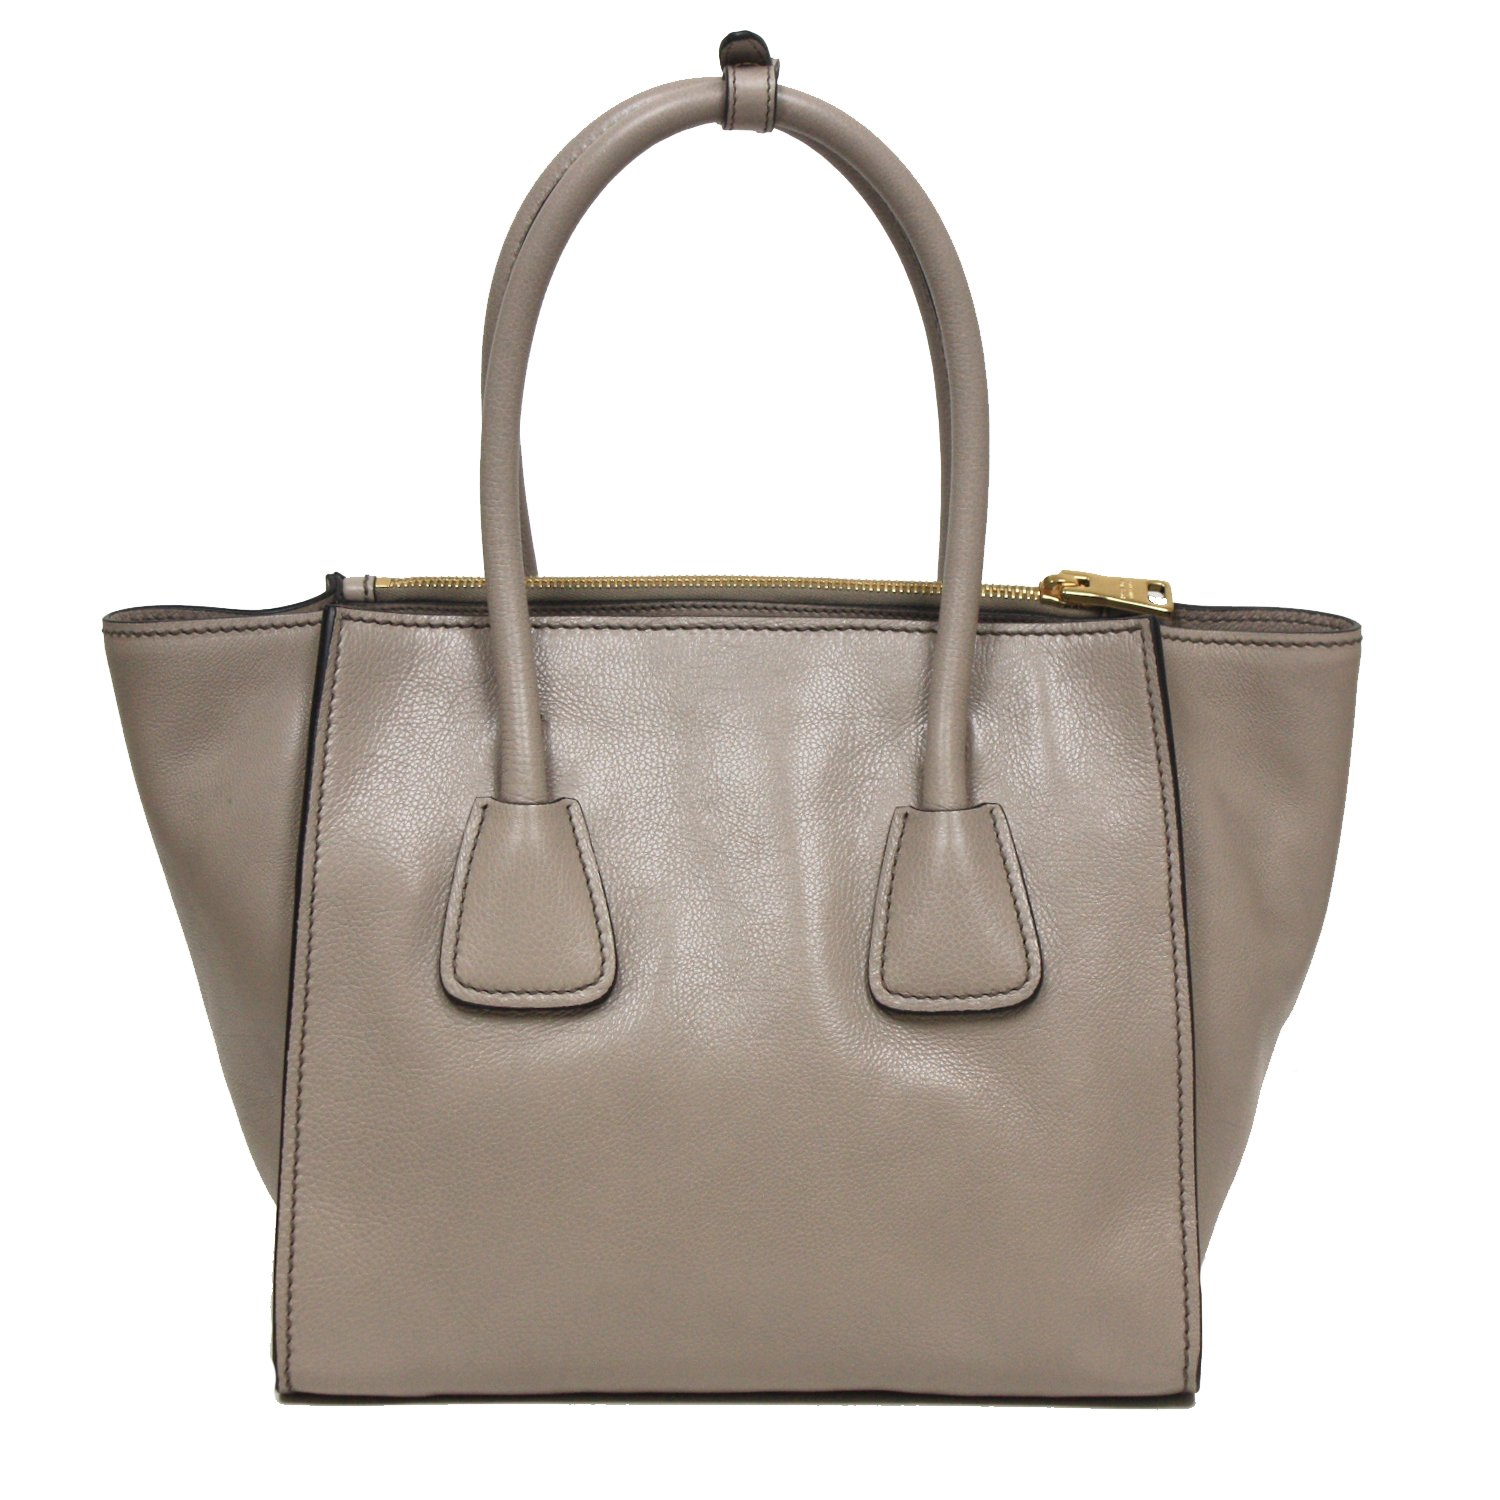 super popular e1ac1 c5ff2 Prada Glance Twins Leather Shopping Tote with Shoulder Strap ...